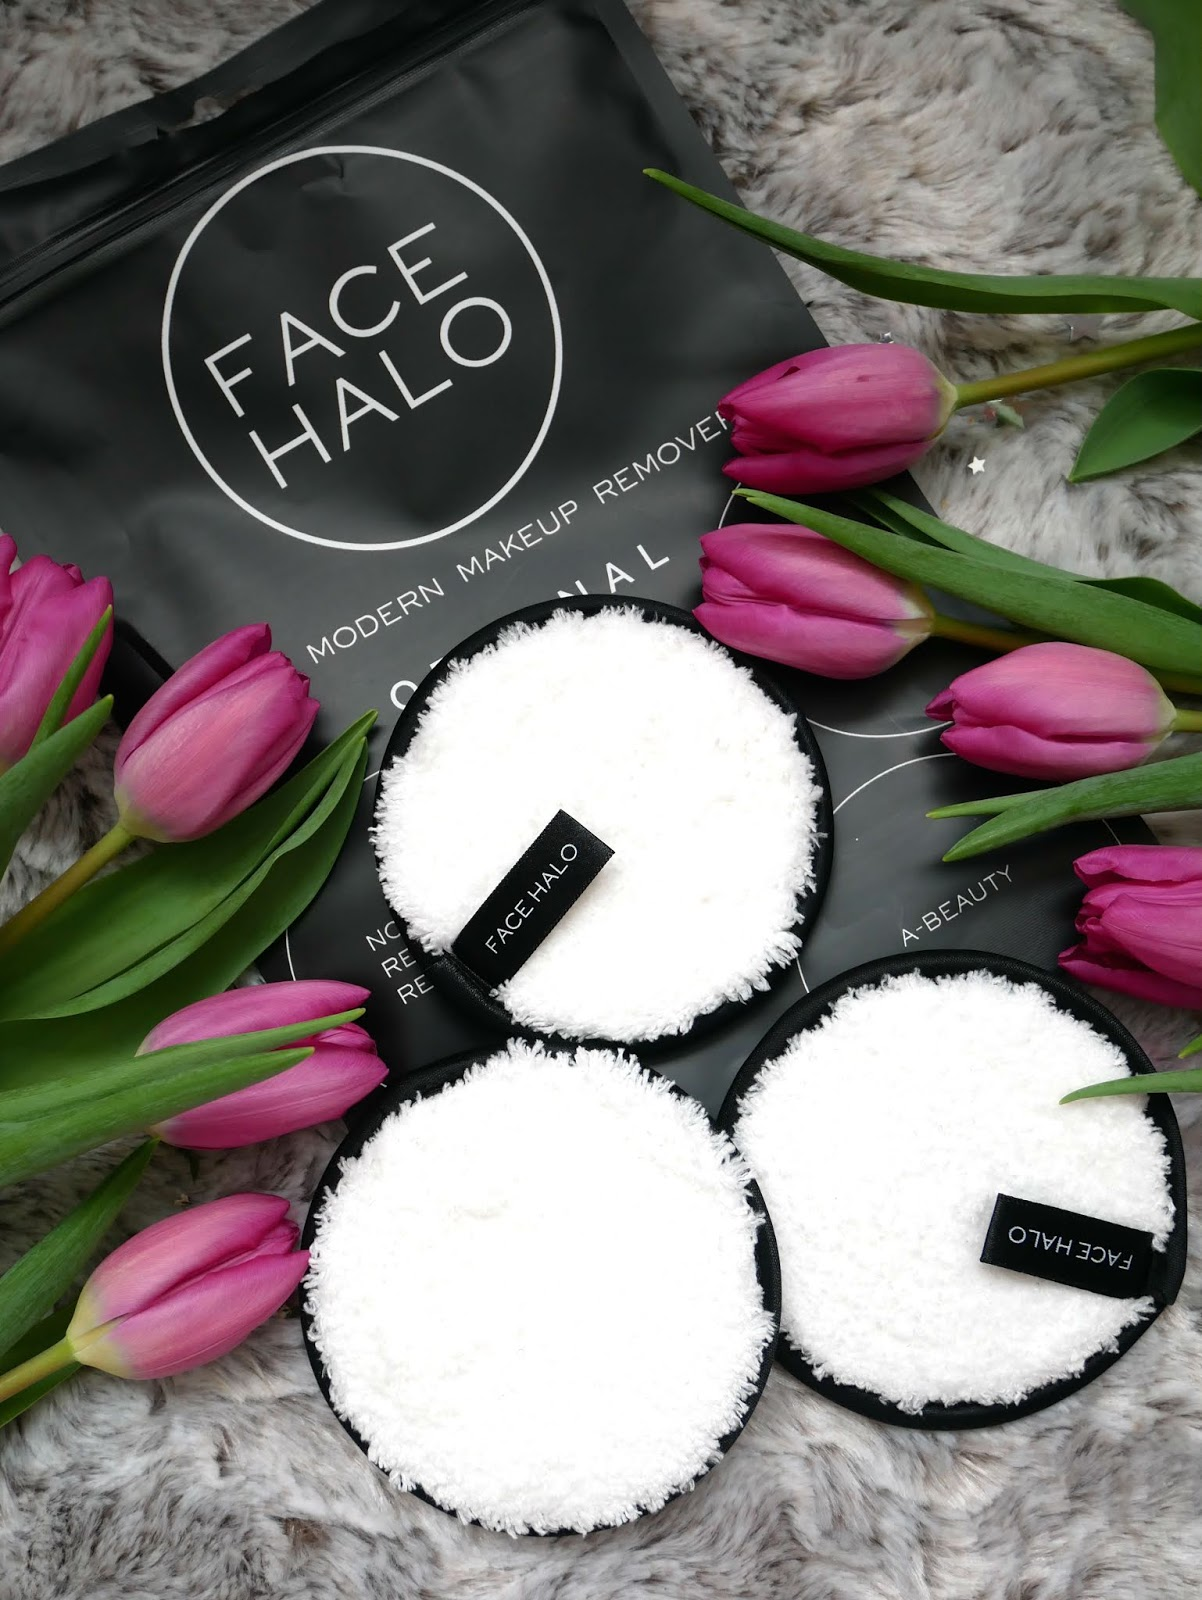 face halo review acne skin